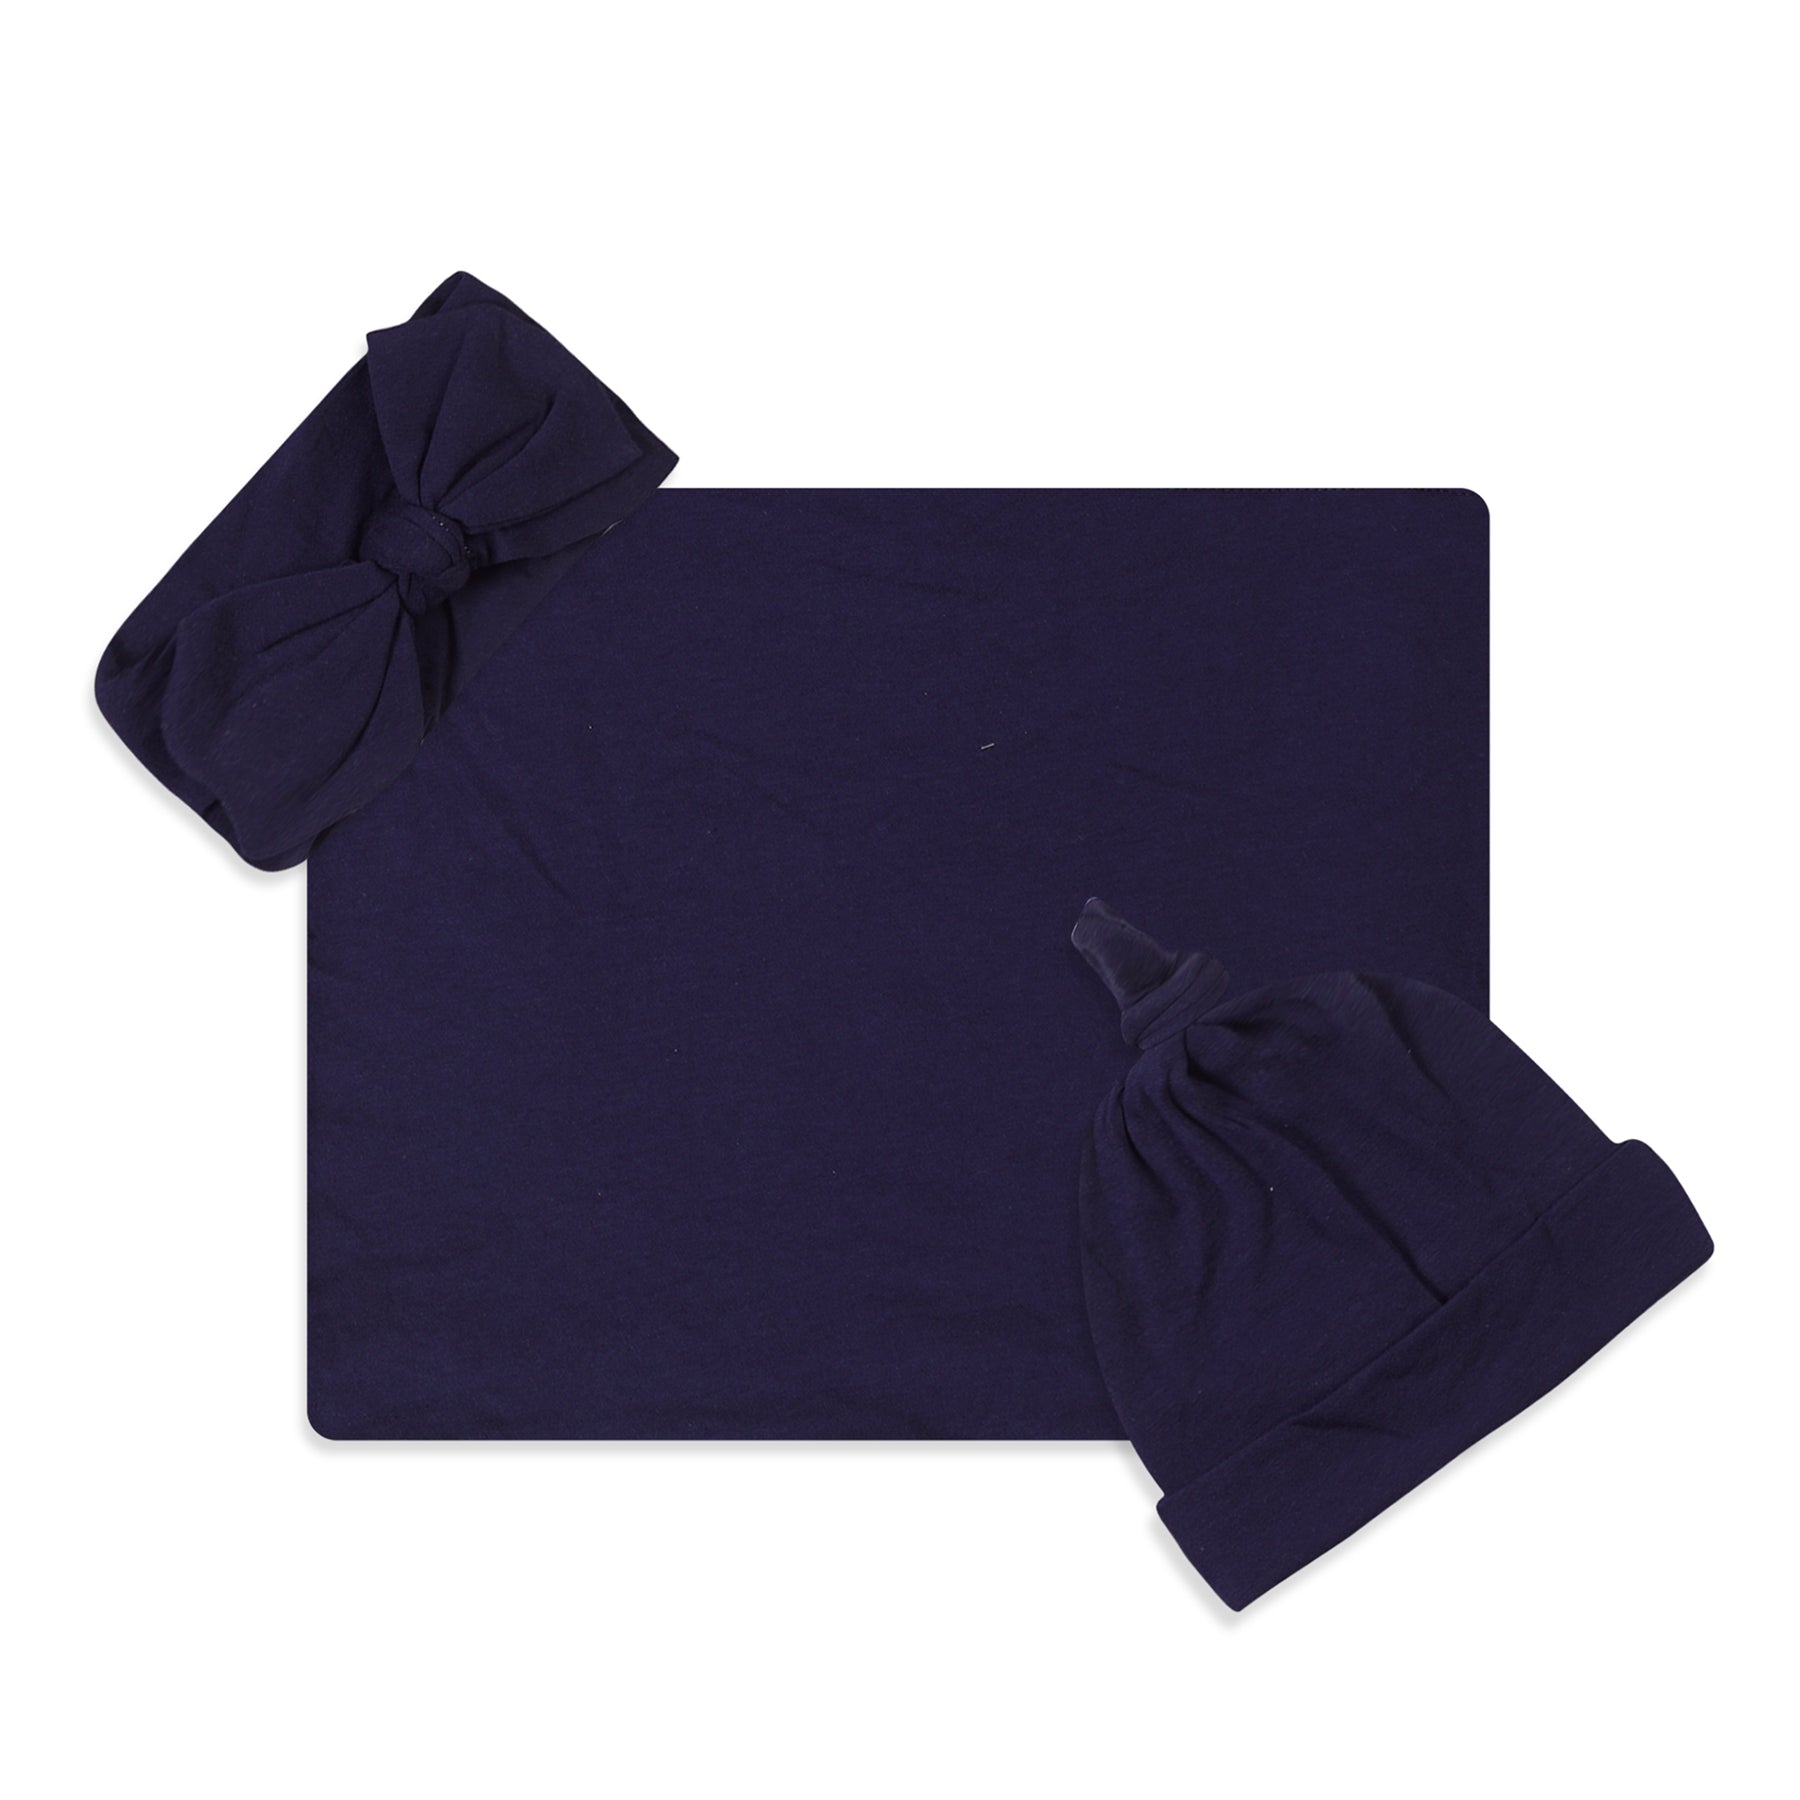 Navy Hos Printed Swaddle Set For Newborn Baby Boy And Girl With Organic Maternity Robe | Comfy Mommy